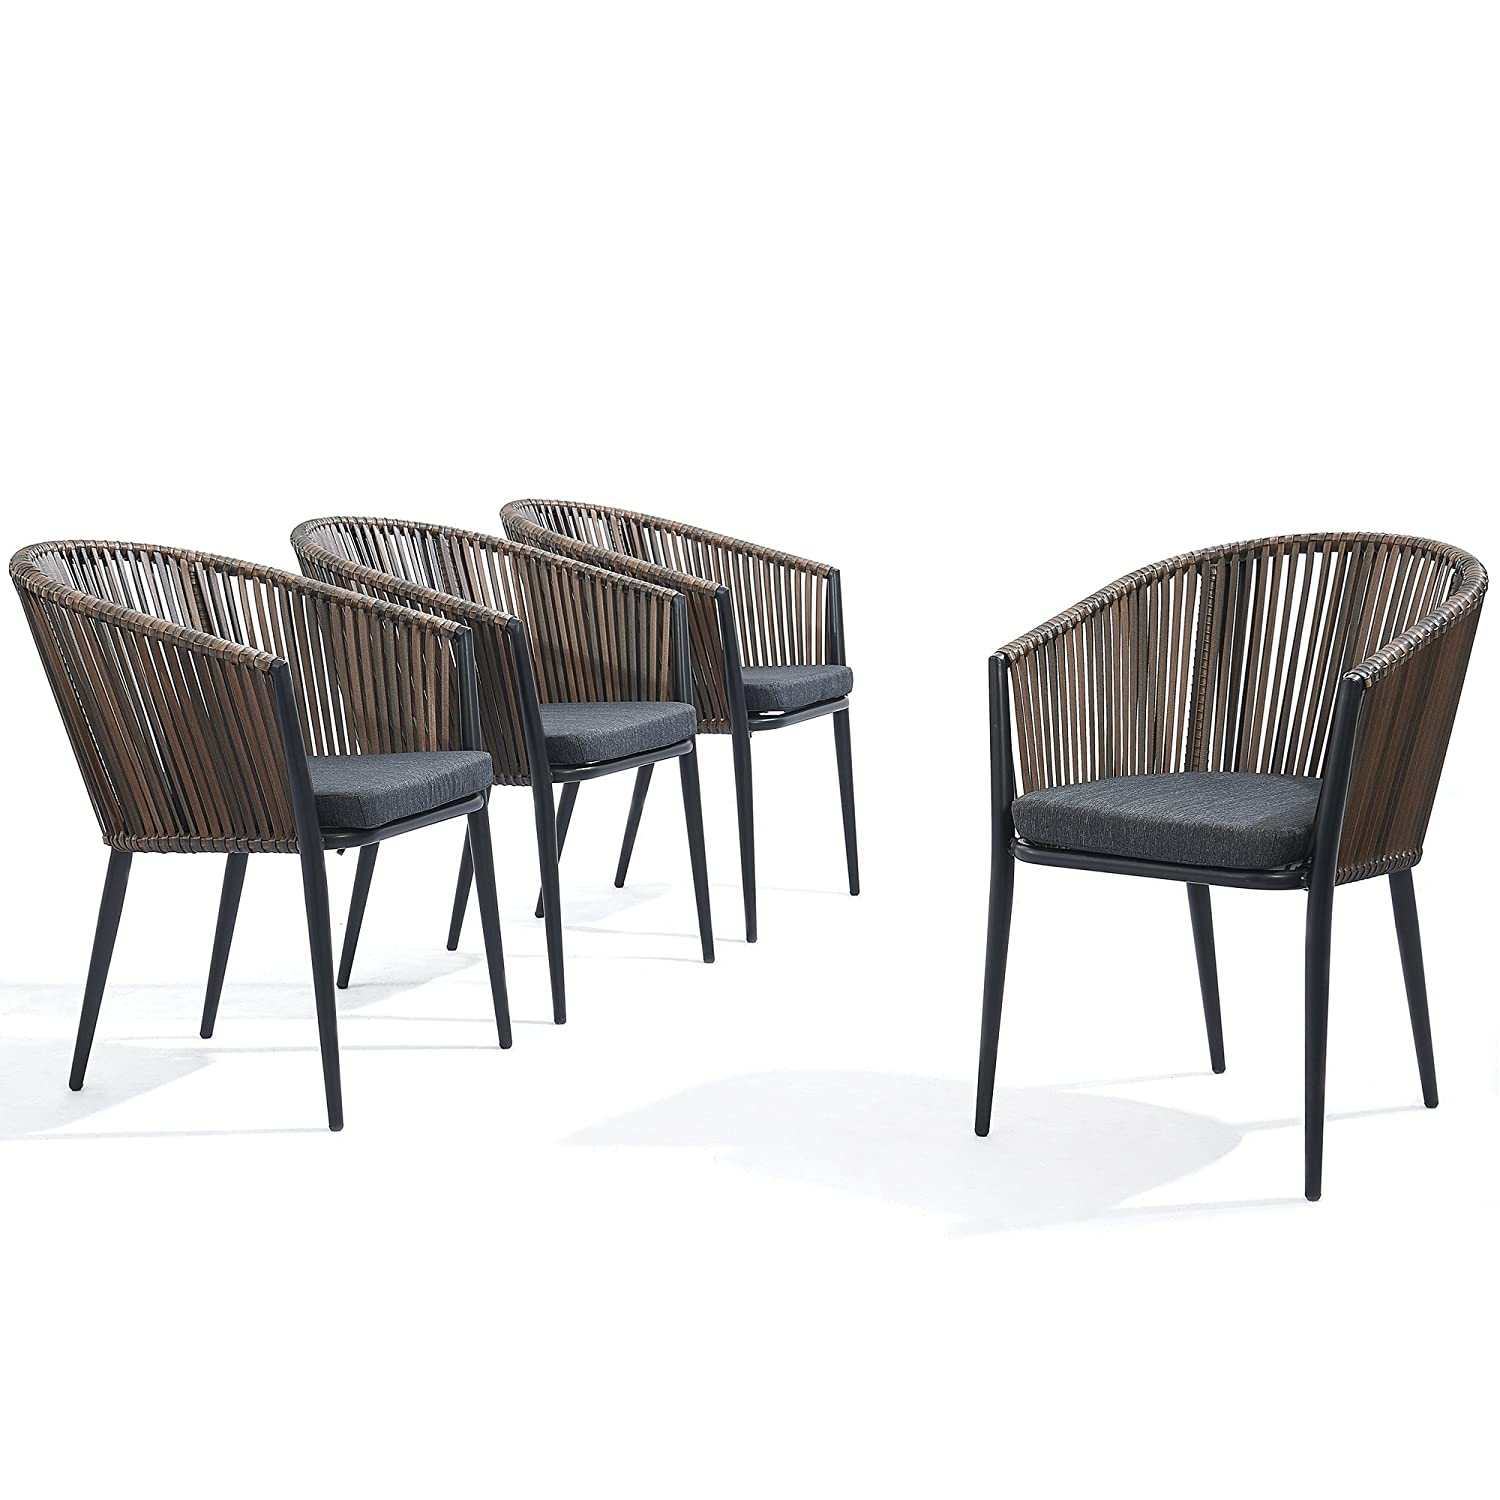 Modern patio rattan dining chairs set of 4 comfy high bow back metal windsor arm chairs stackable for outdoor garden café restaurant bistro bar dinette